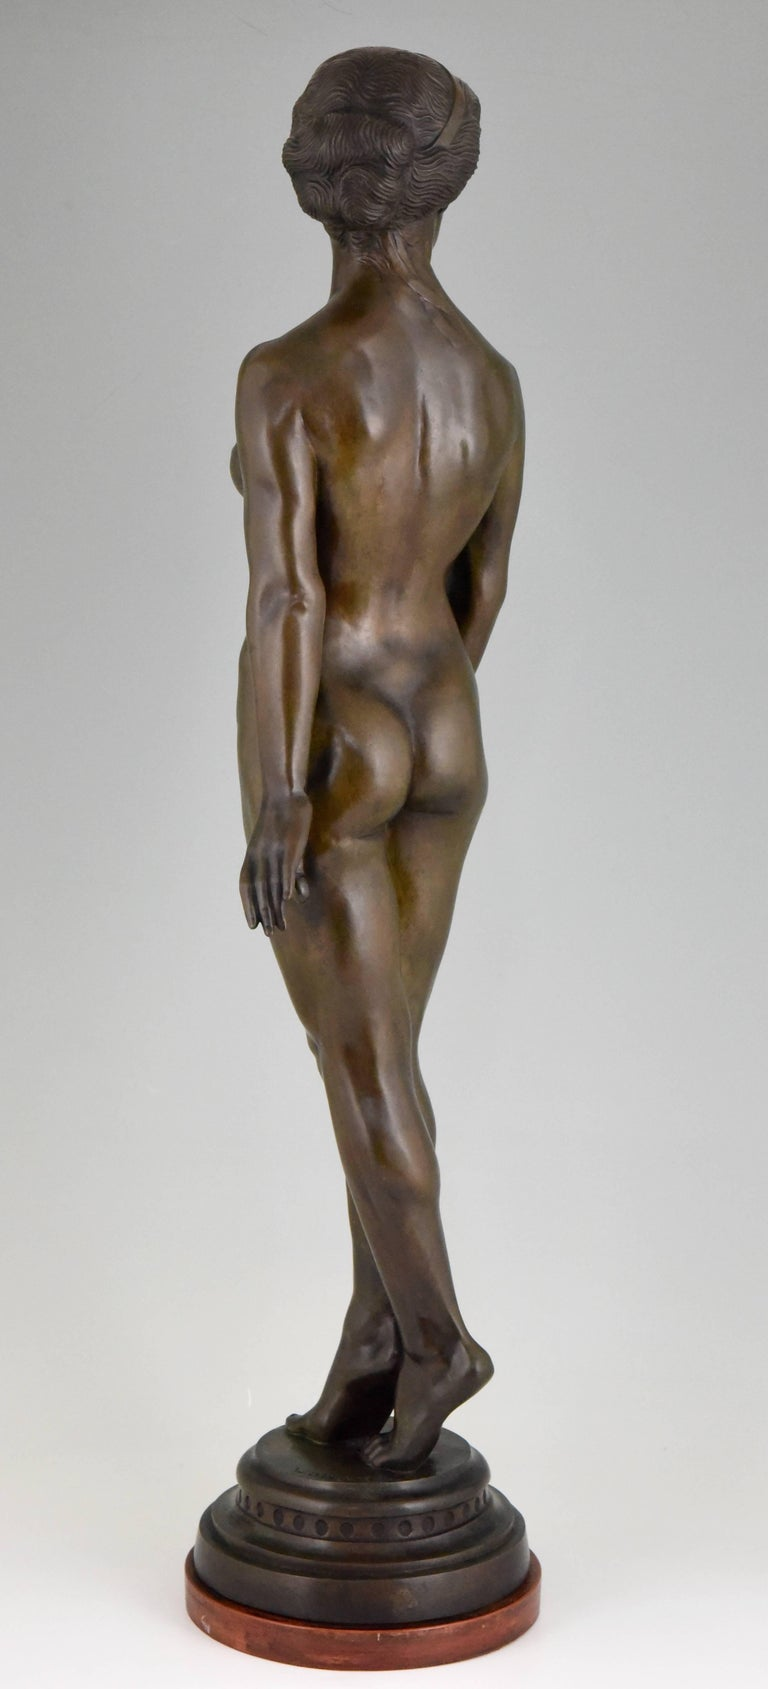 Patinated Art Deco Bronze Standing Nude by Wilhelm Oskar Prack, 1930 For Sale